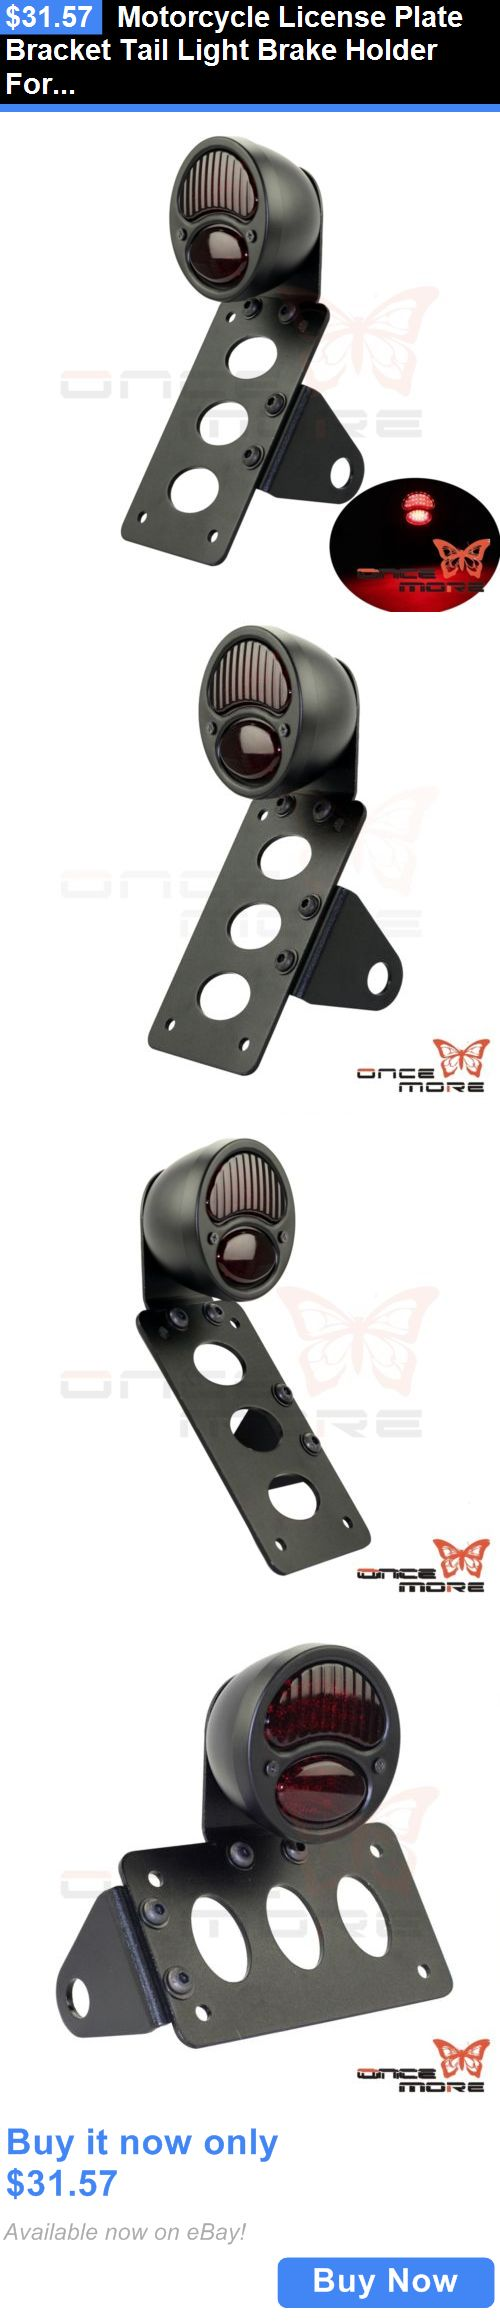 motorcycle parts: Motorcycle License Plate Bracket Tail Light Brake Holder For Harley Custom BUY IT NOW ONLY: $31.57